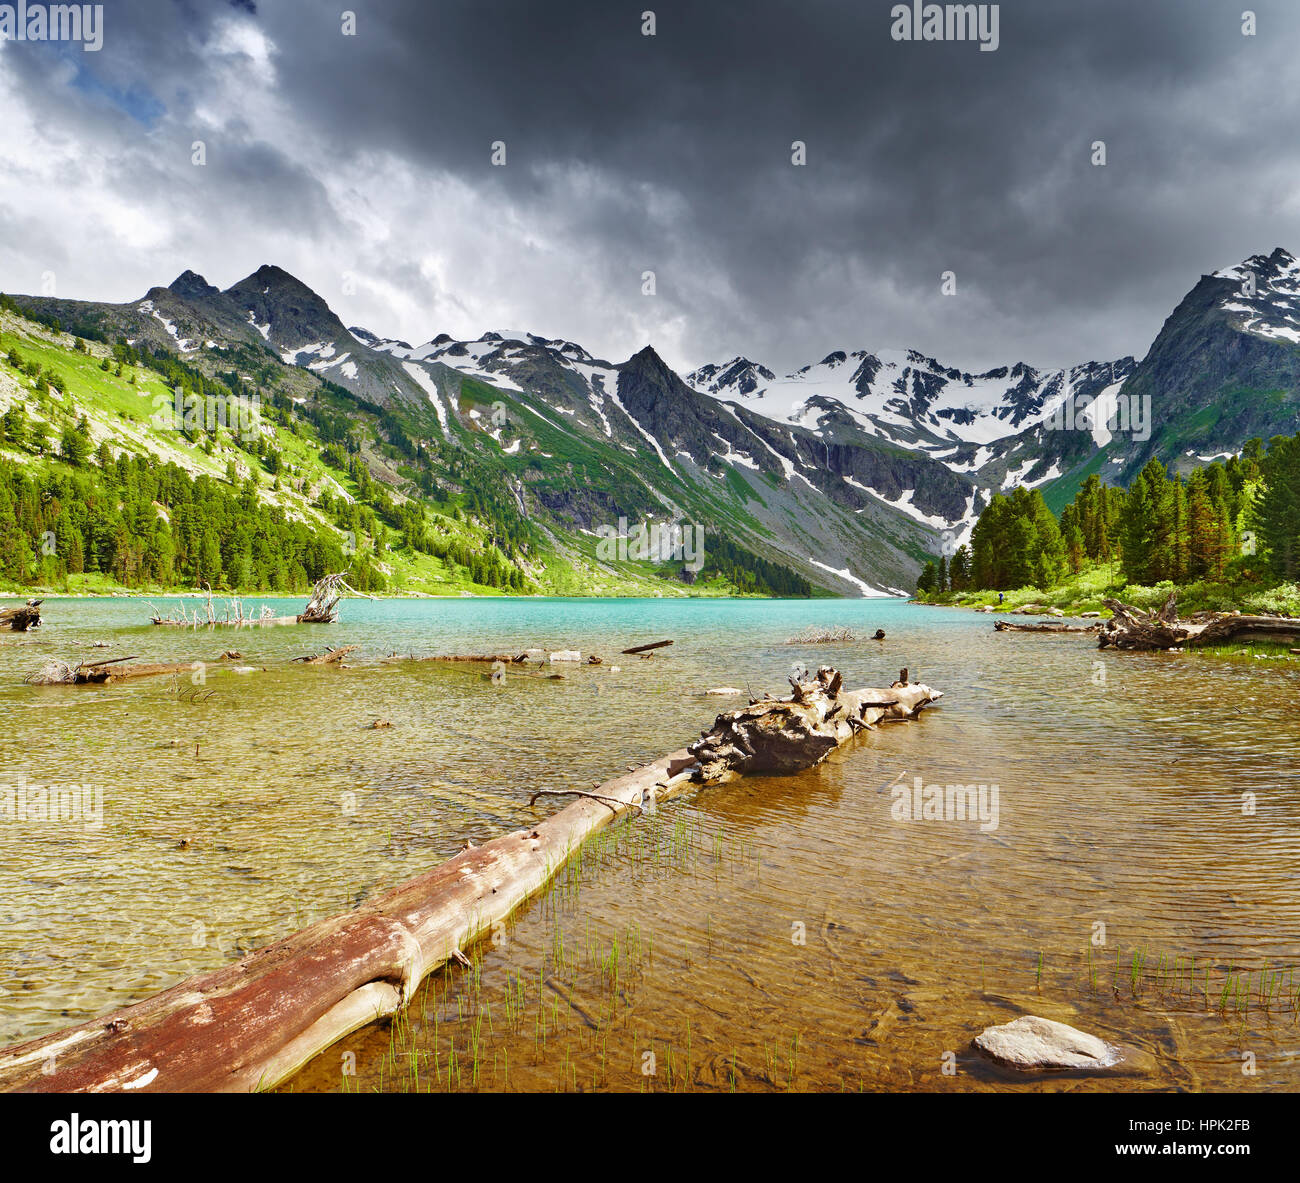 Mountain lake, Altai mountains, Russia - Stock Image